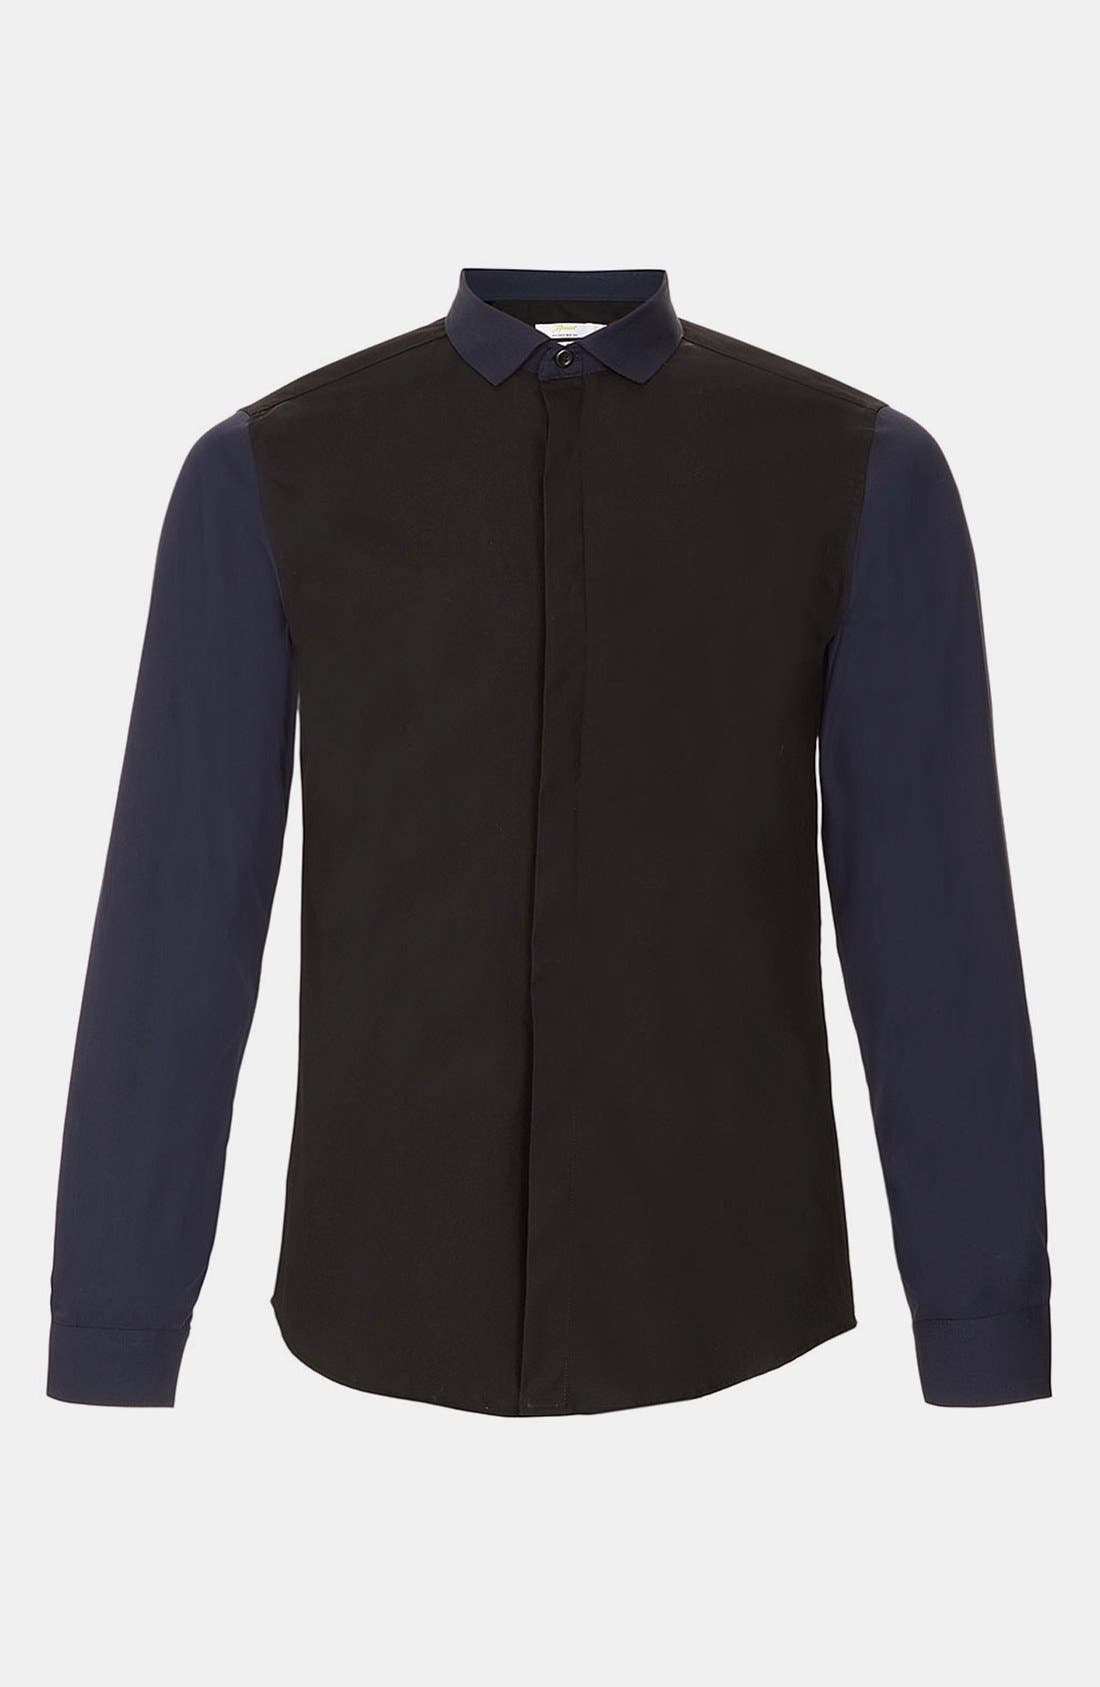 Main Image - Topman 'Smart' Extra Trim Contrast Dress Shirt